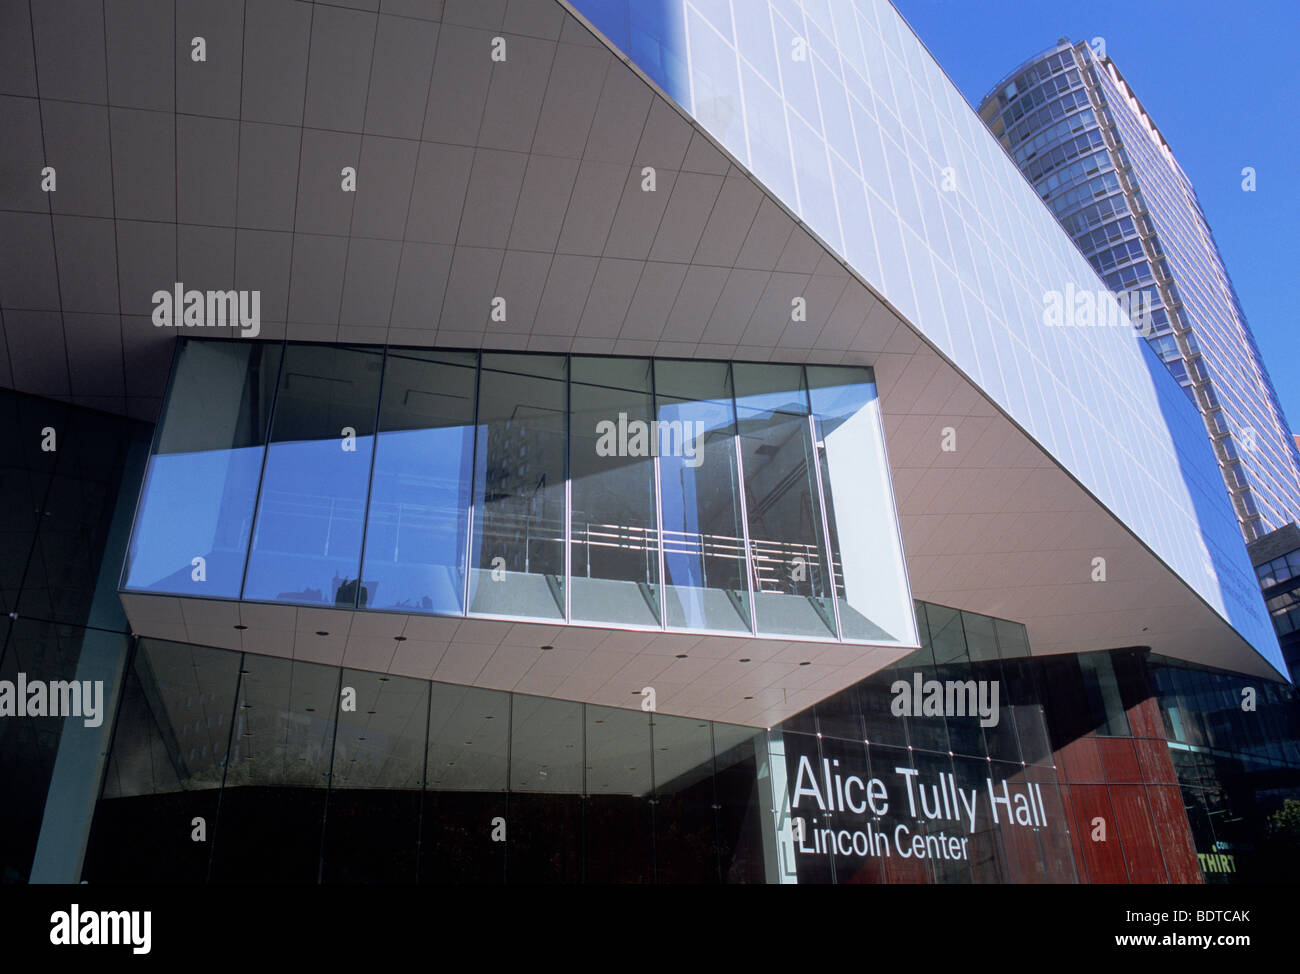 New York City Alice Tully Hall Lincoln Center for the Performing Arts USA - Stock Image